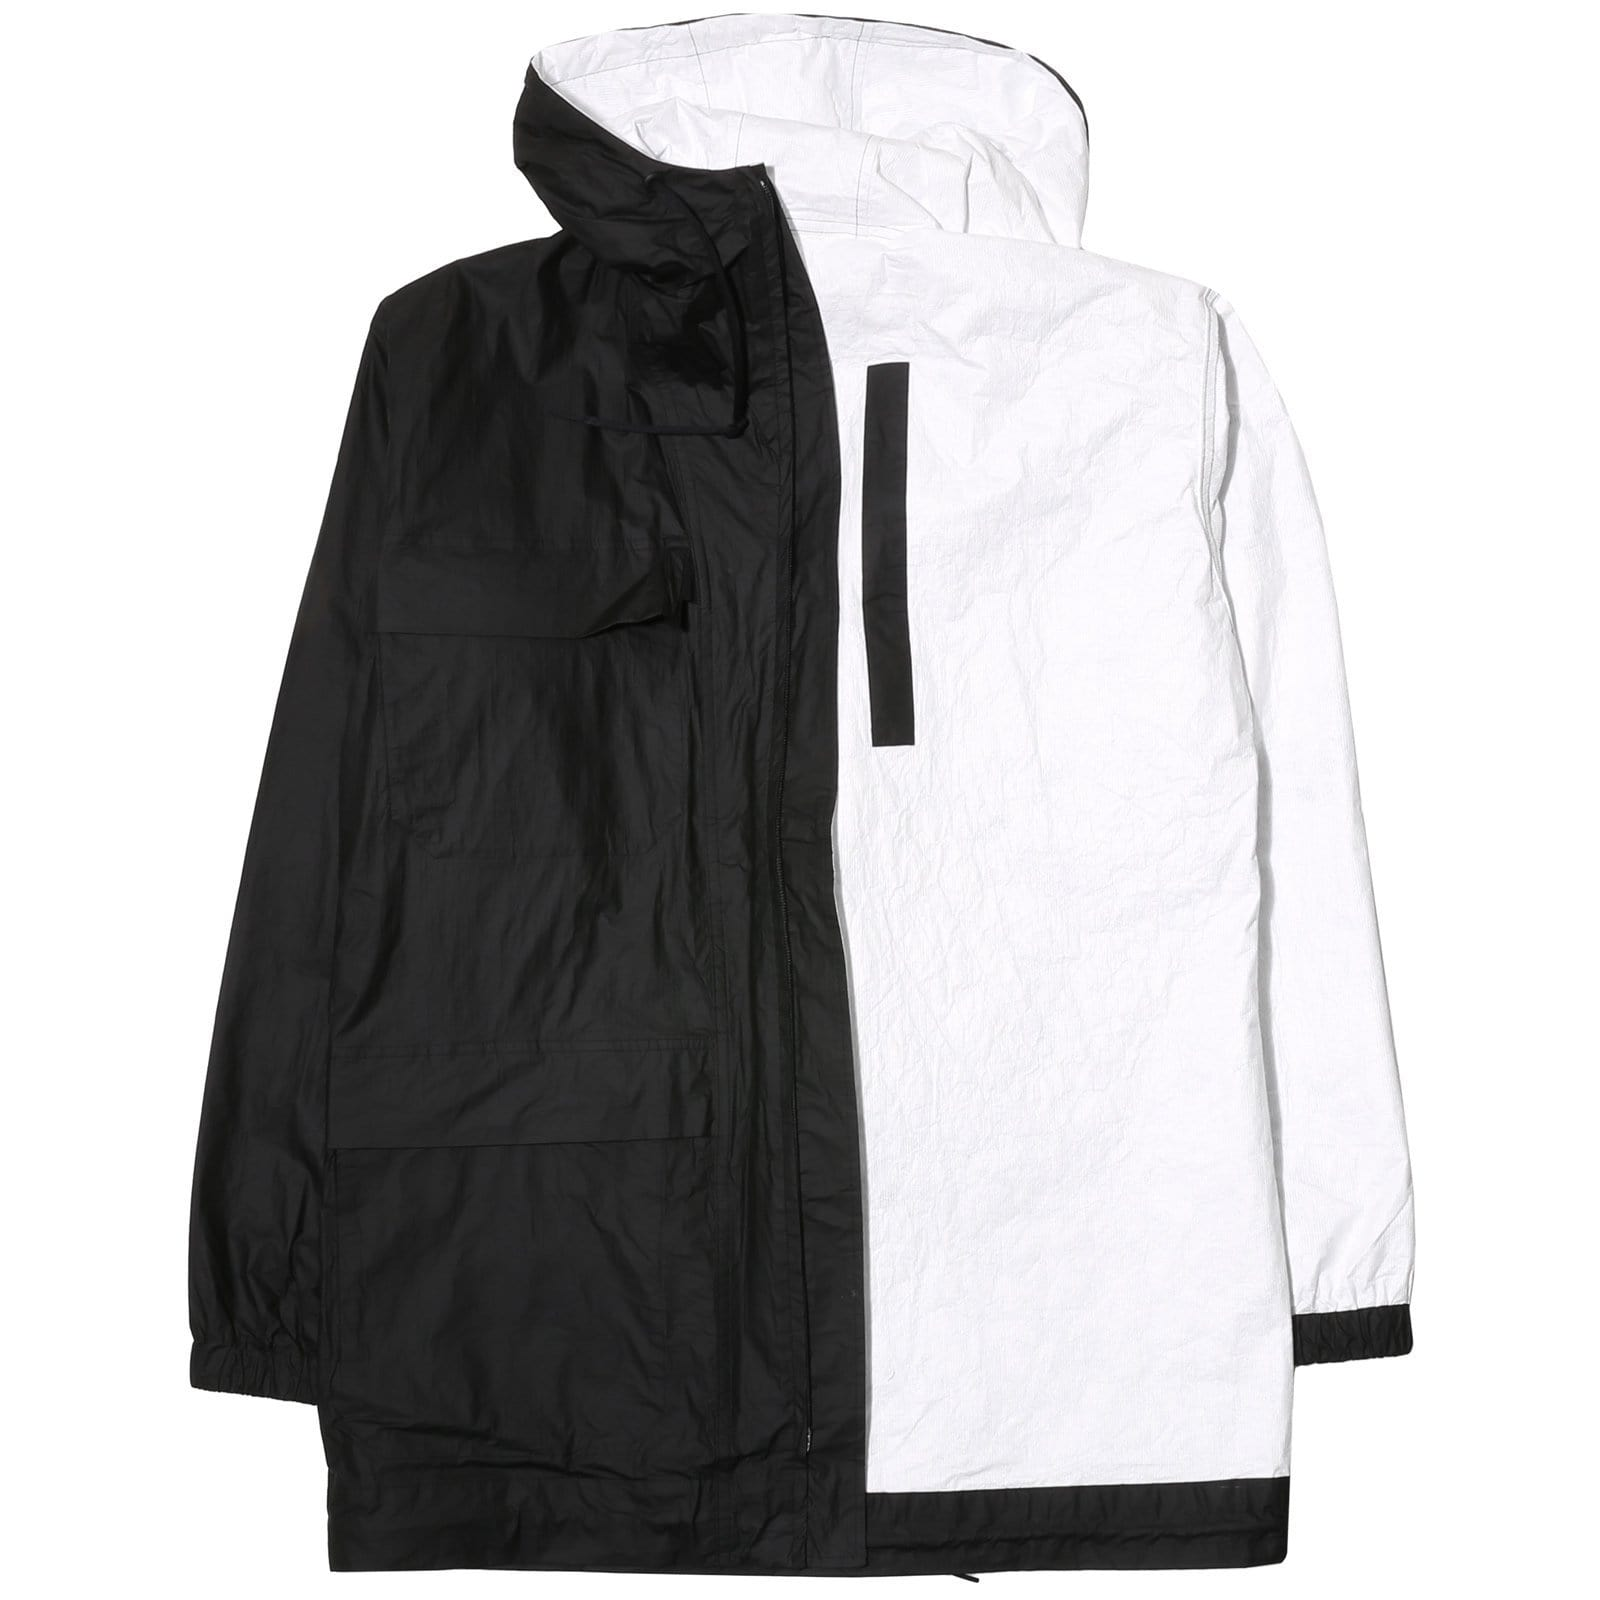 5969c438f38c Y-3 REVERSIBLE JACKET Black Core White – Bodega